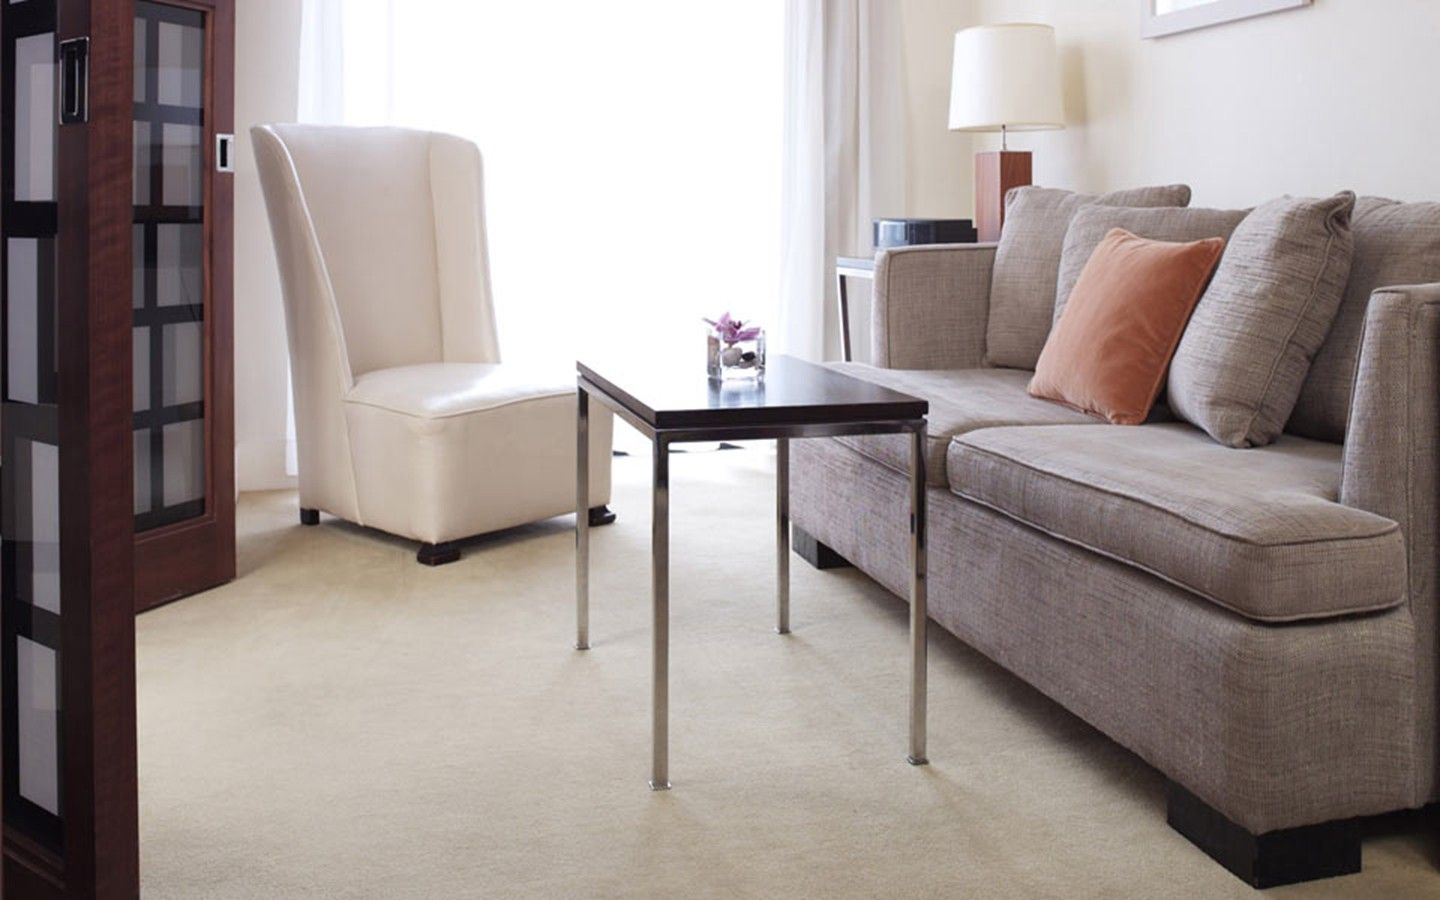 The private living area in a King Suite at 60 Thompson in SoHo New York City.